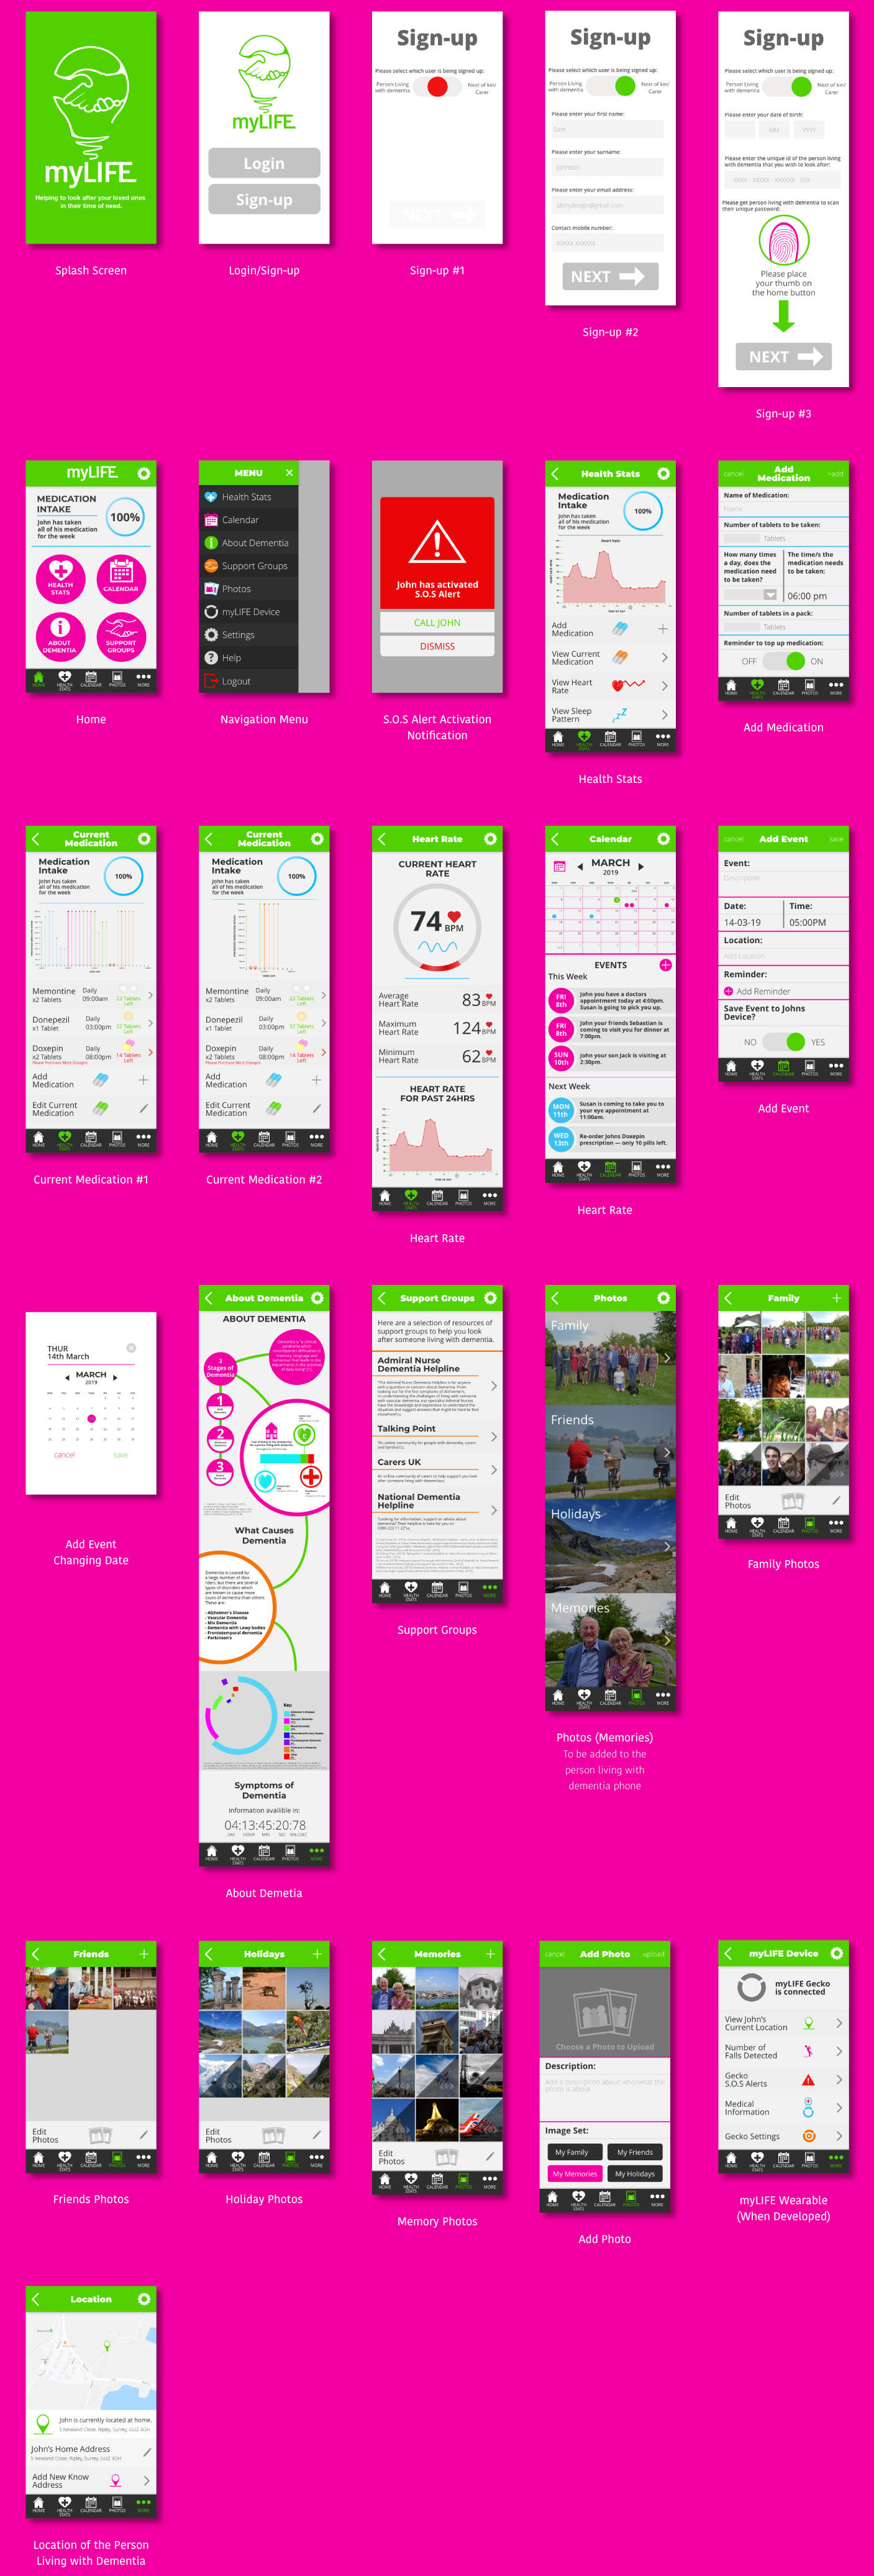 Next of kin/carers    side of the mobile application.